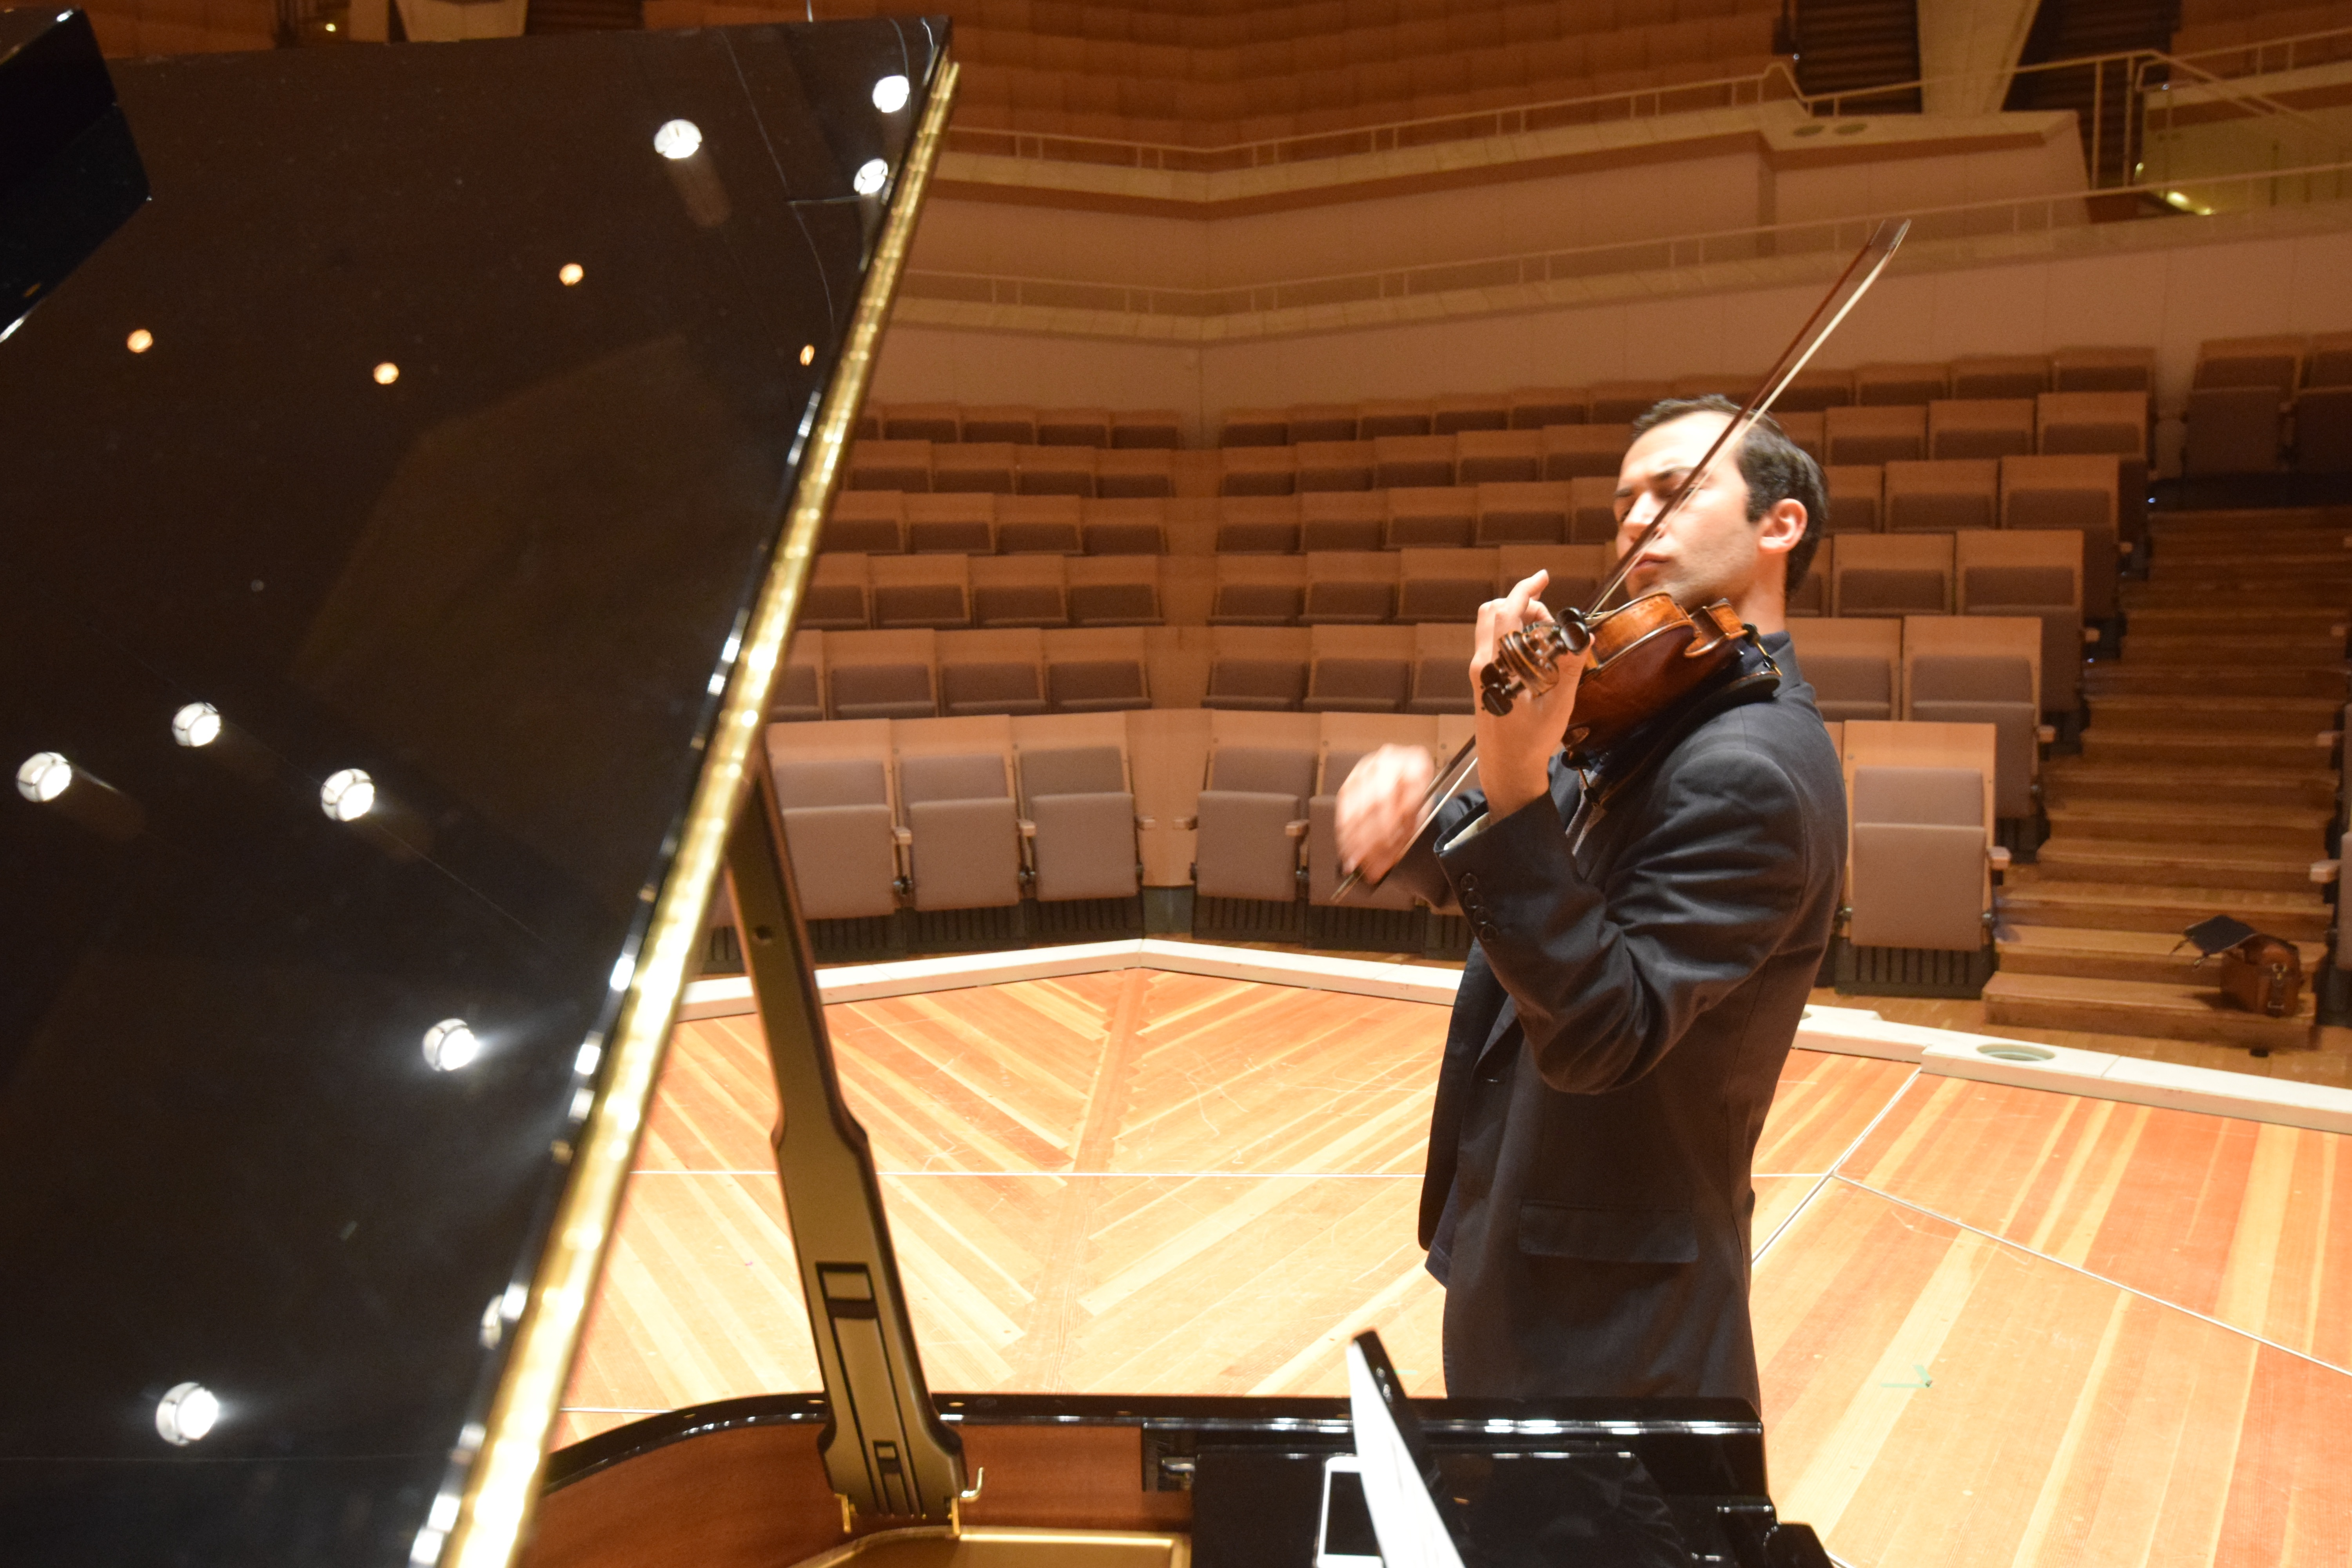 berliner music competition 76